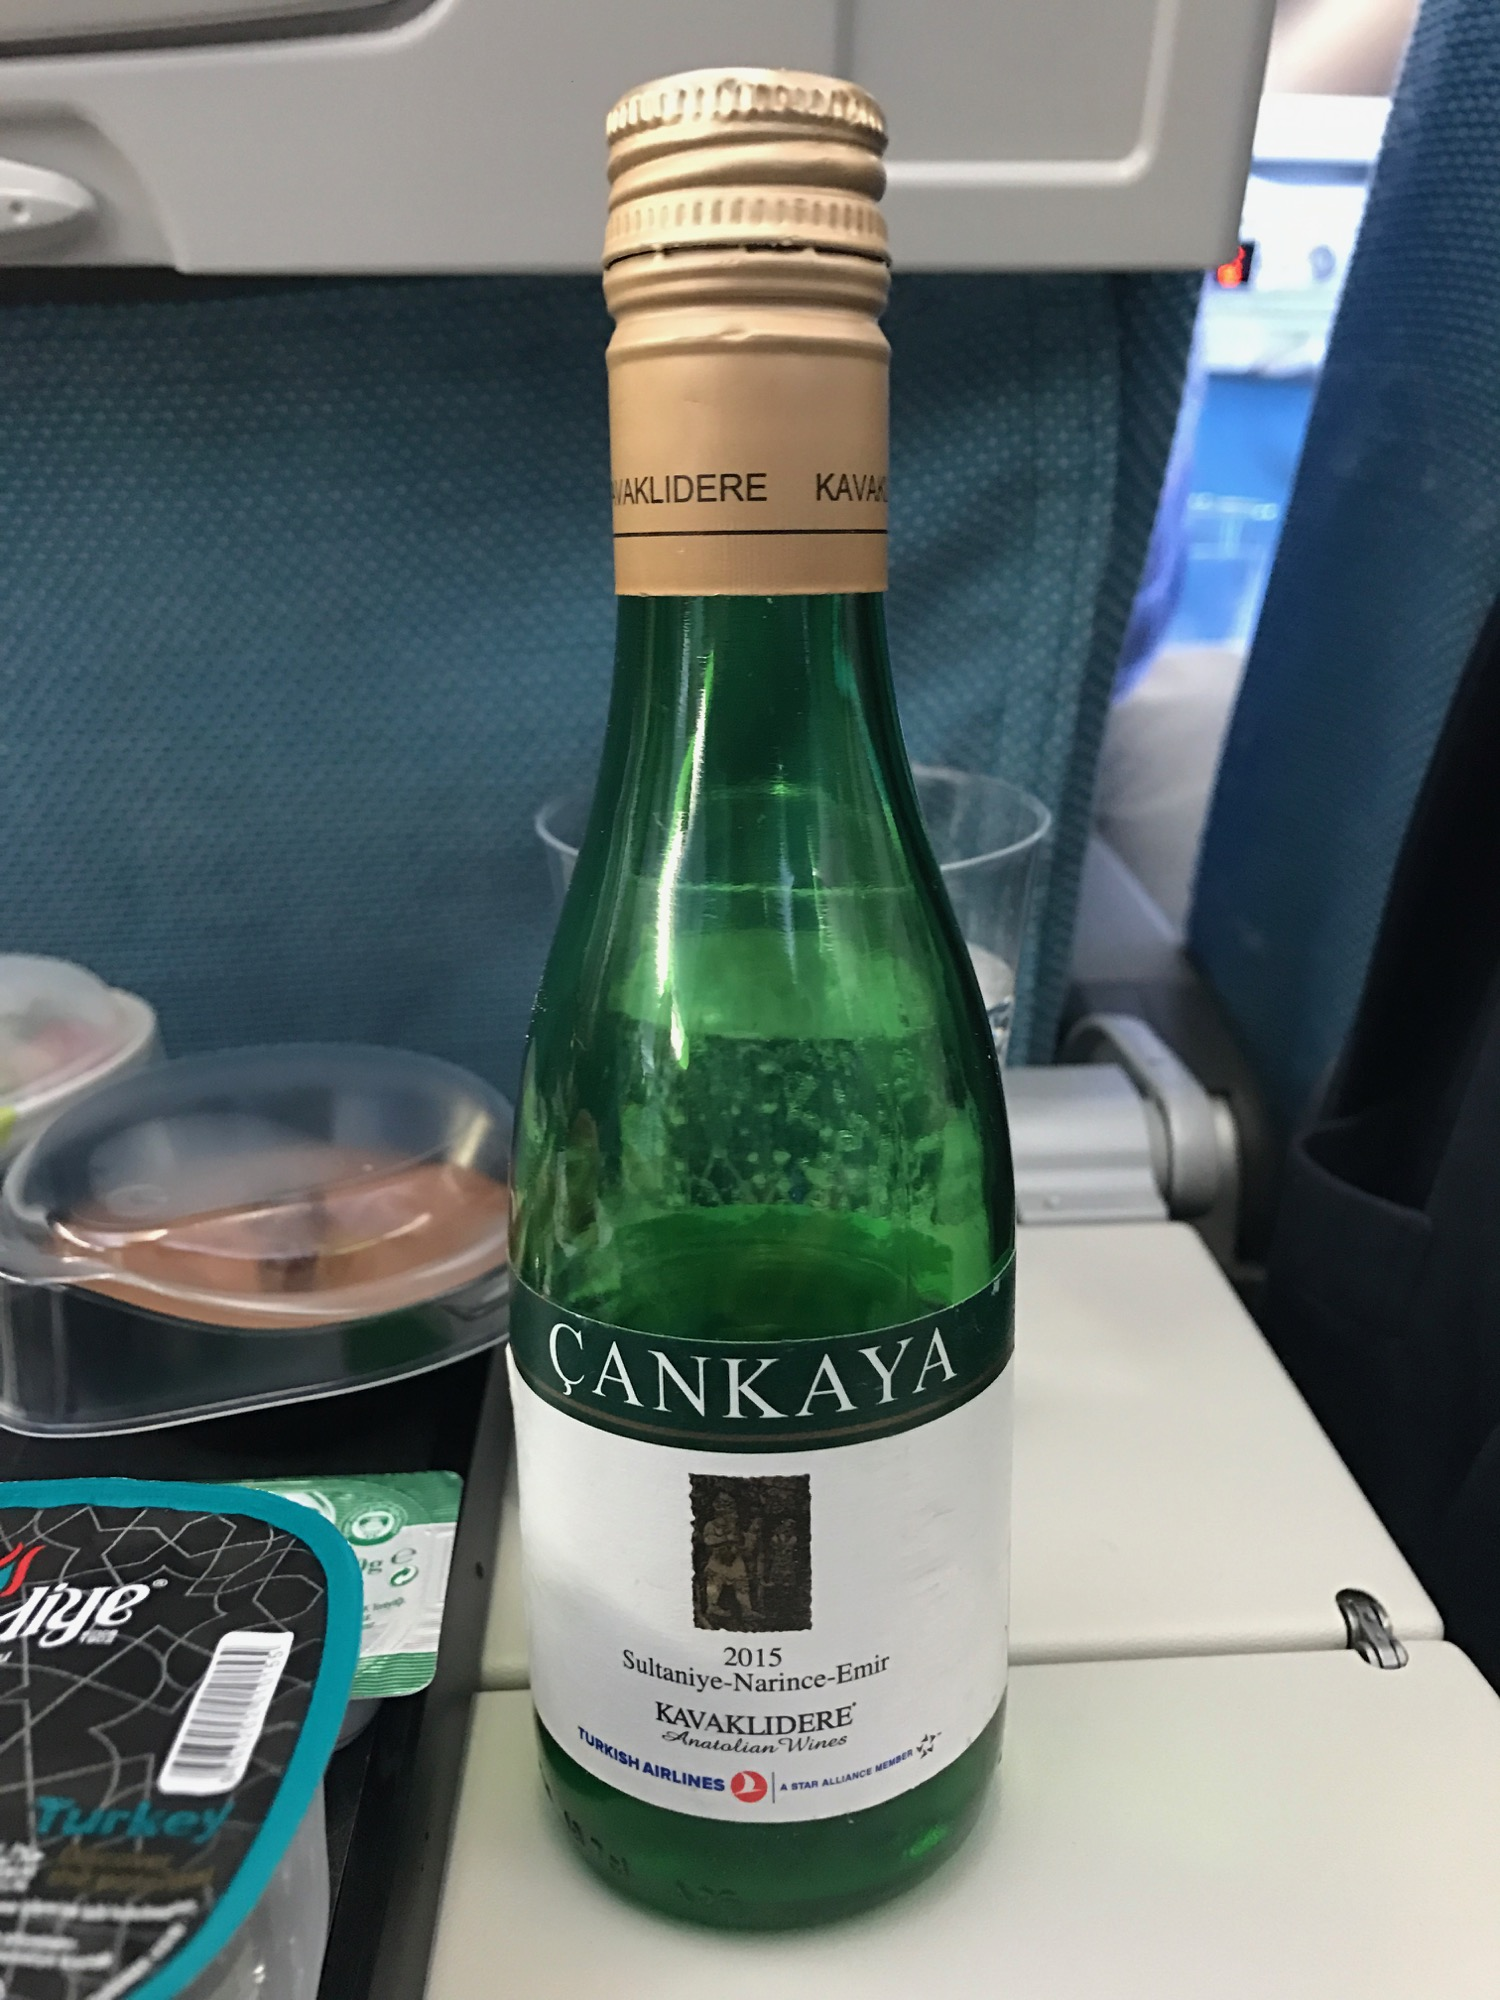 Turkish Airlines Economy Class Review 777-300 - 40